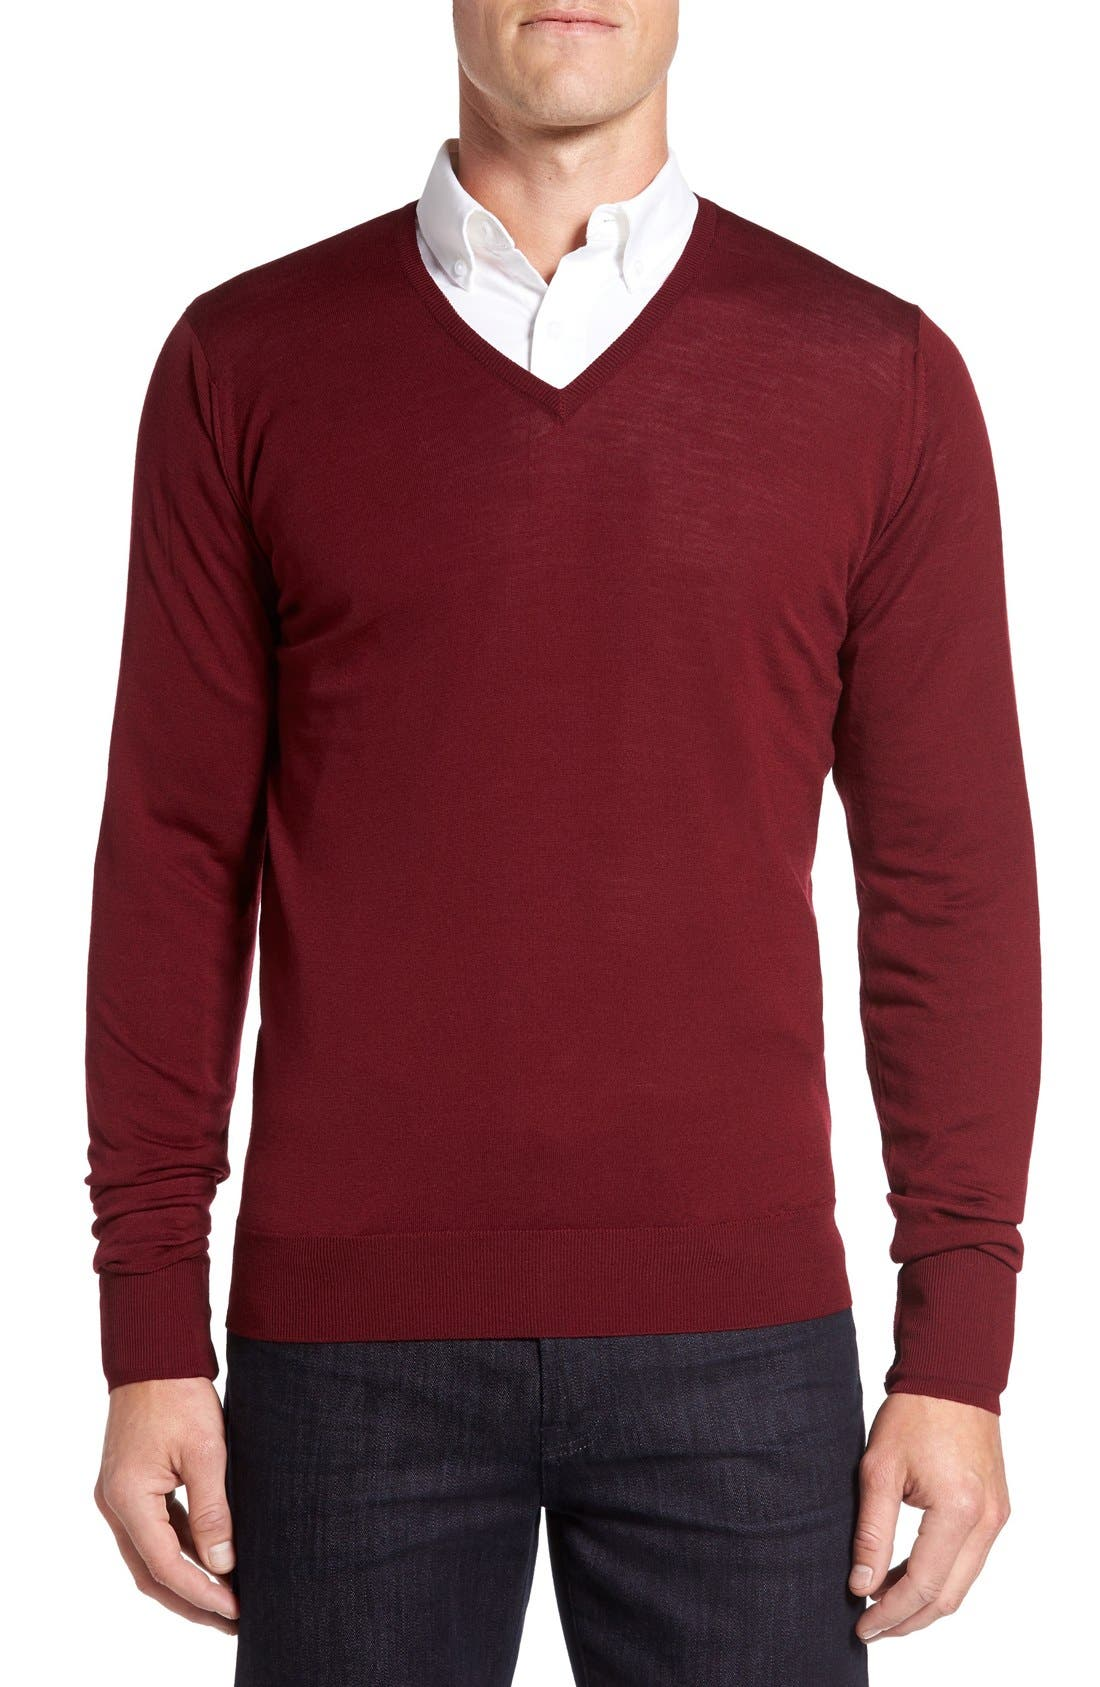 Alternate Image 1 Selected - John Smedley 'Bobby' Easy Fit V Neck Wool Sweater